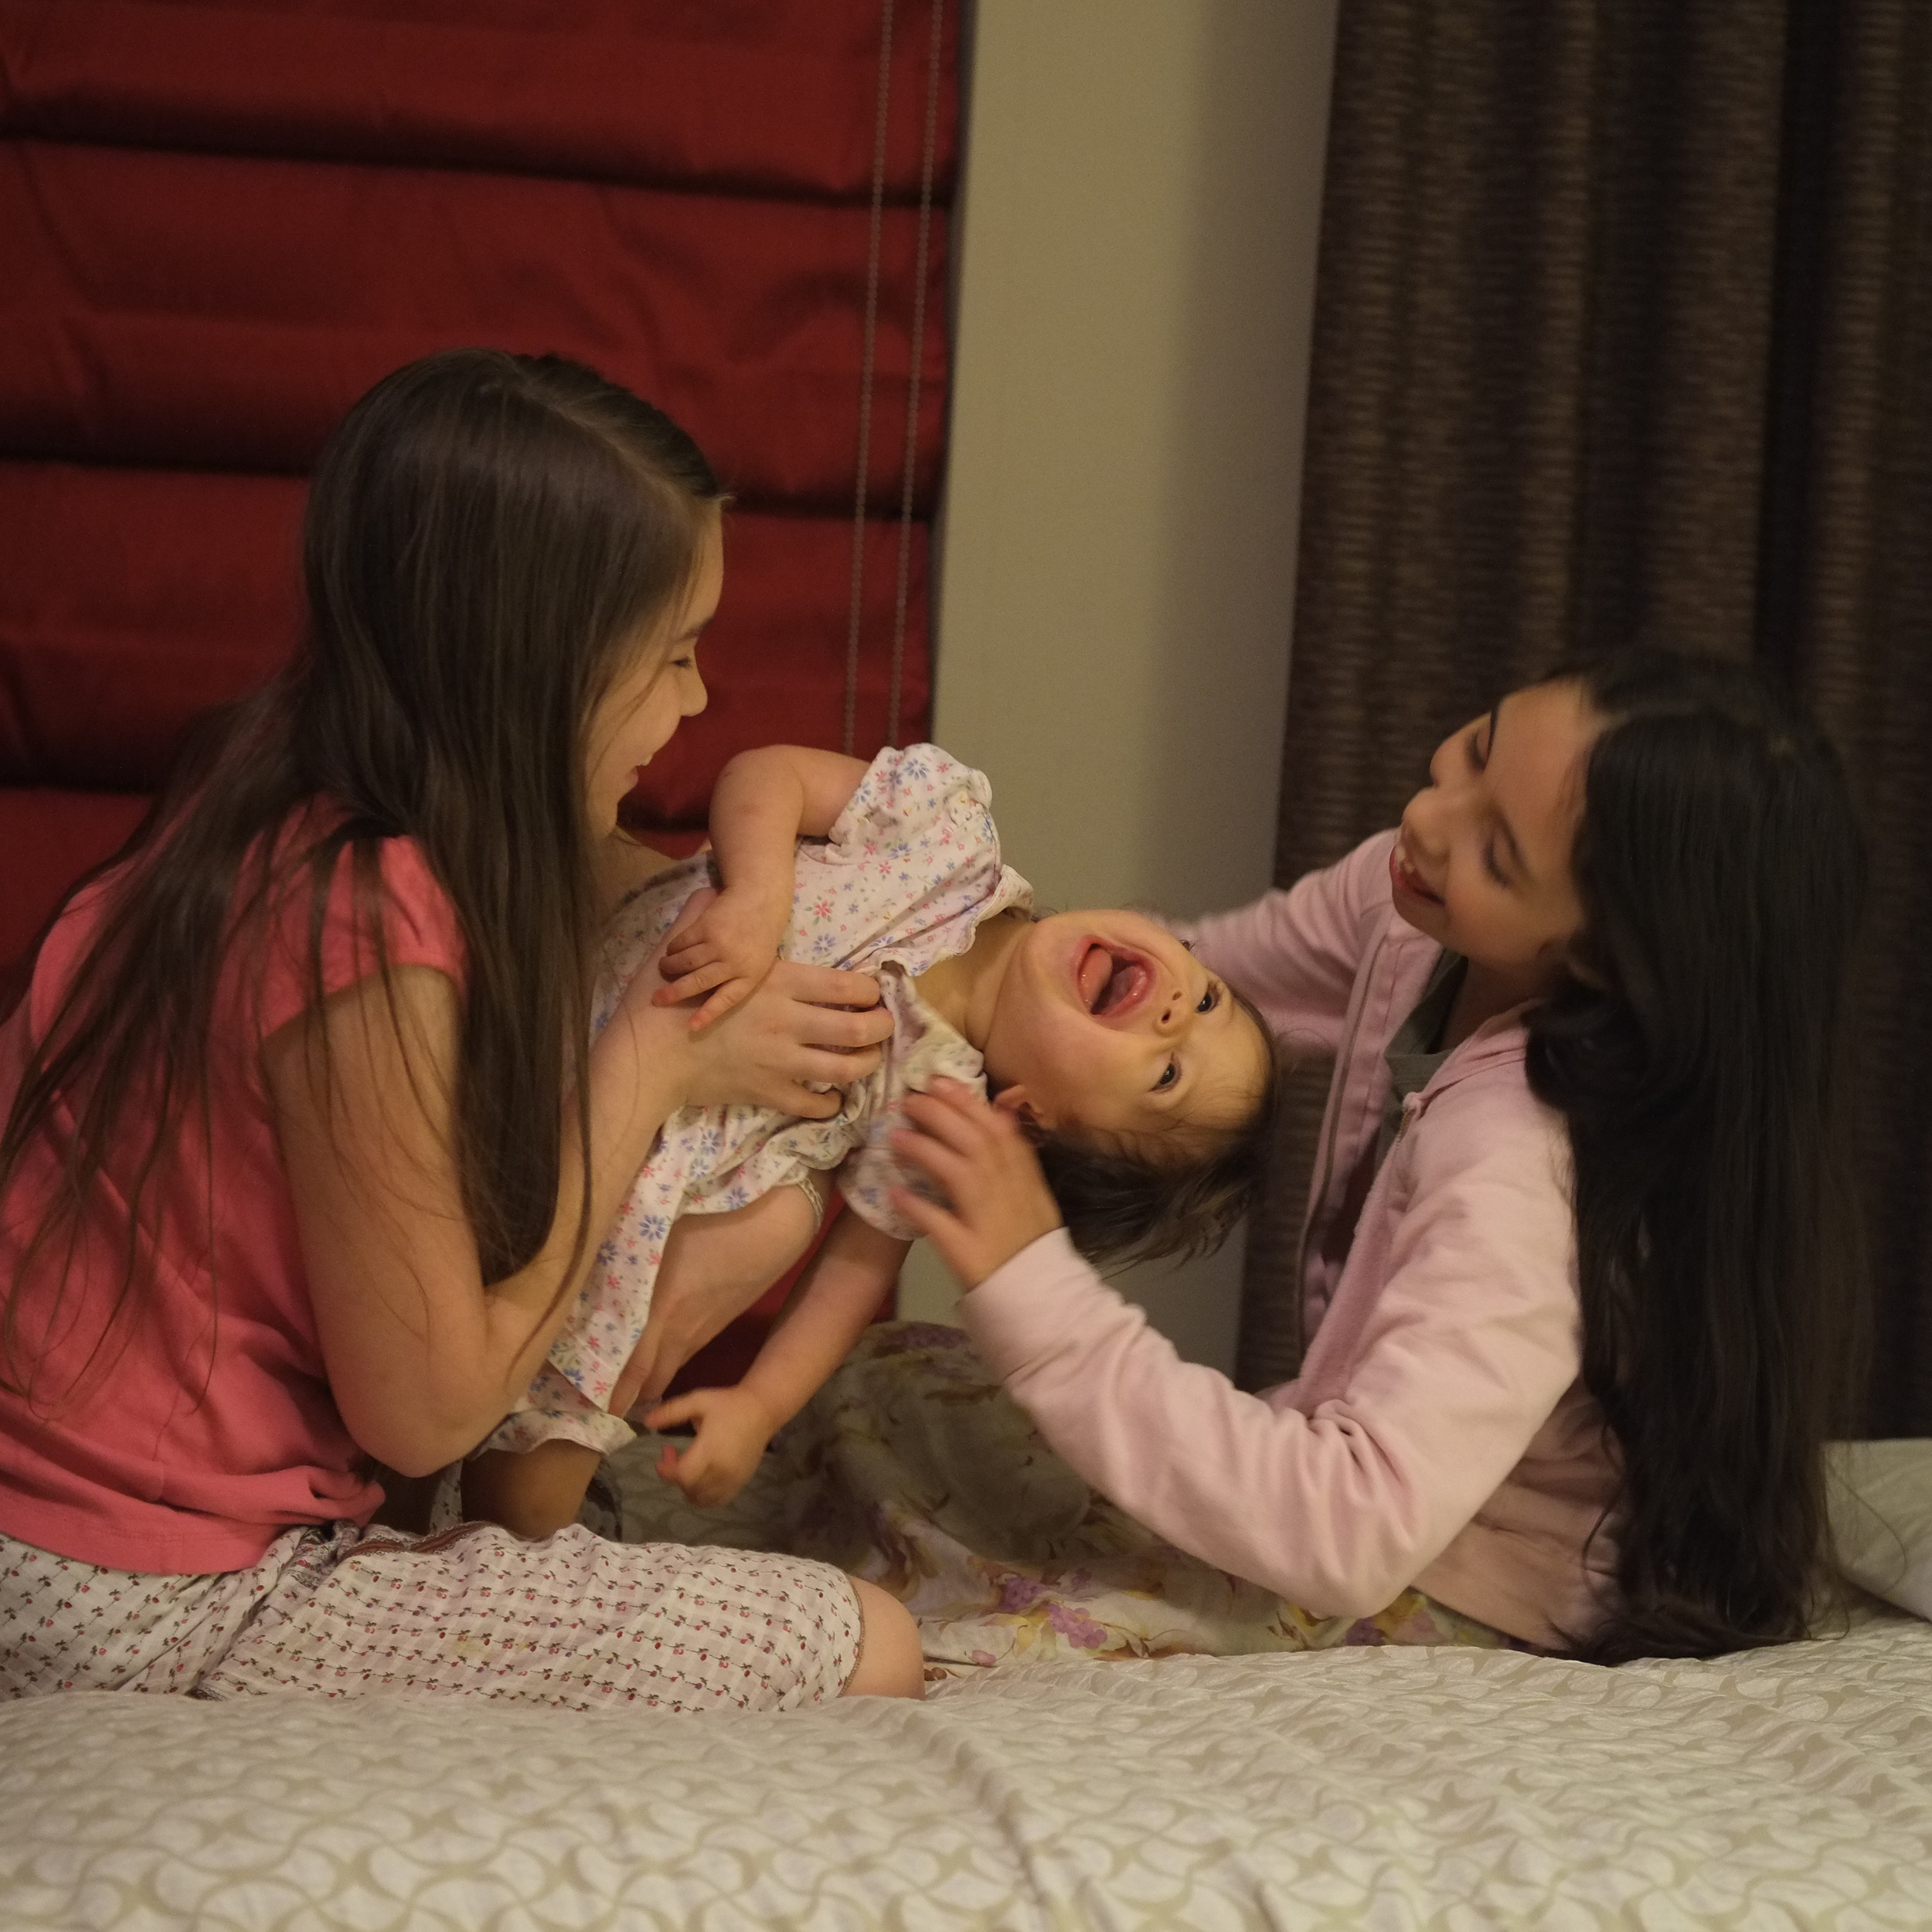 October 2014 - sisters playing together at the hotel as we get ready for another day's journey to make it to another wedding.